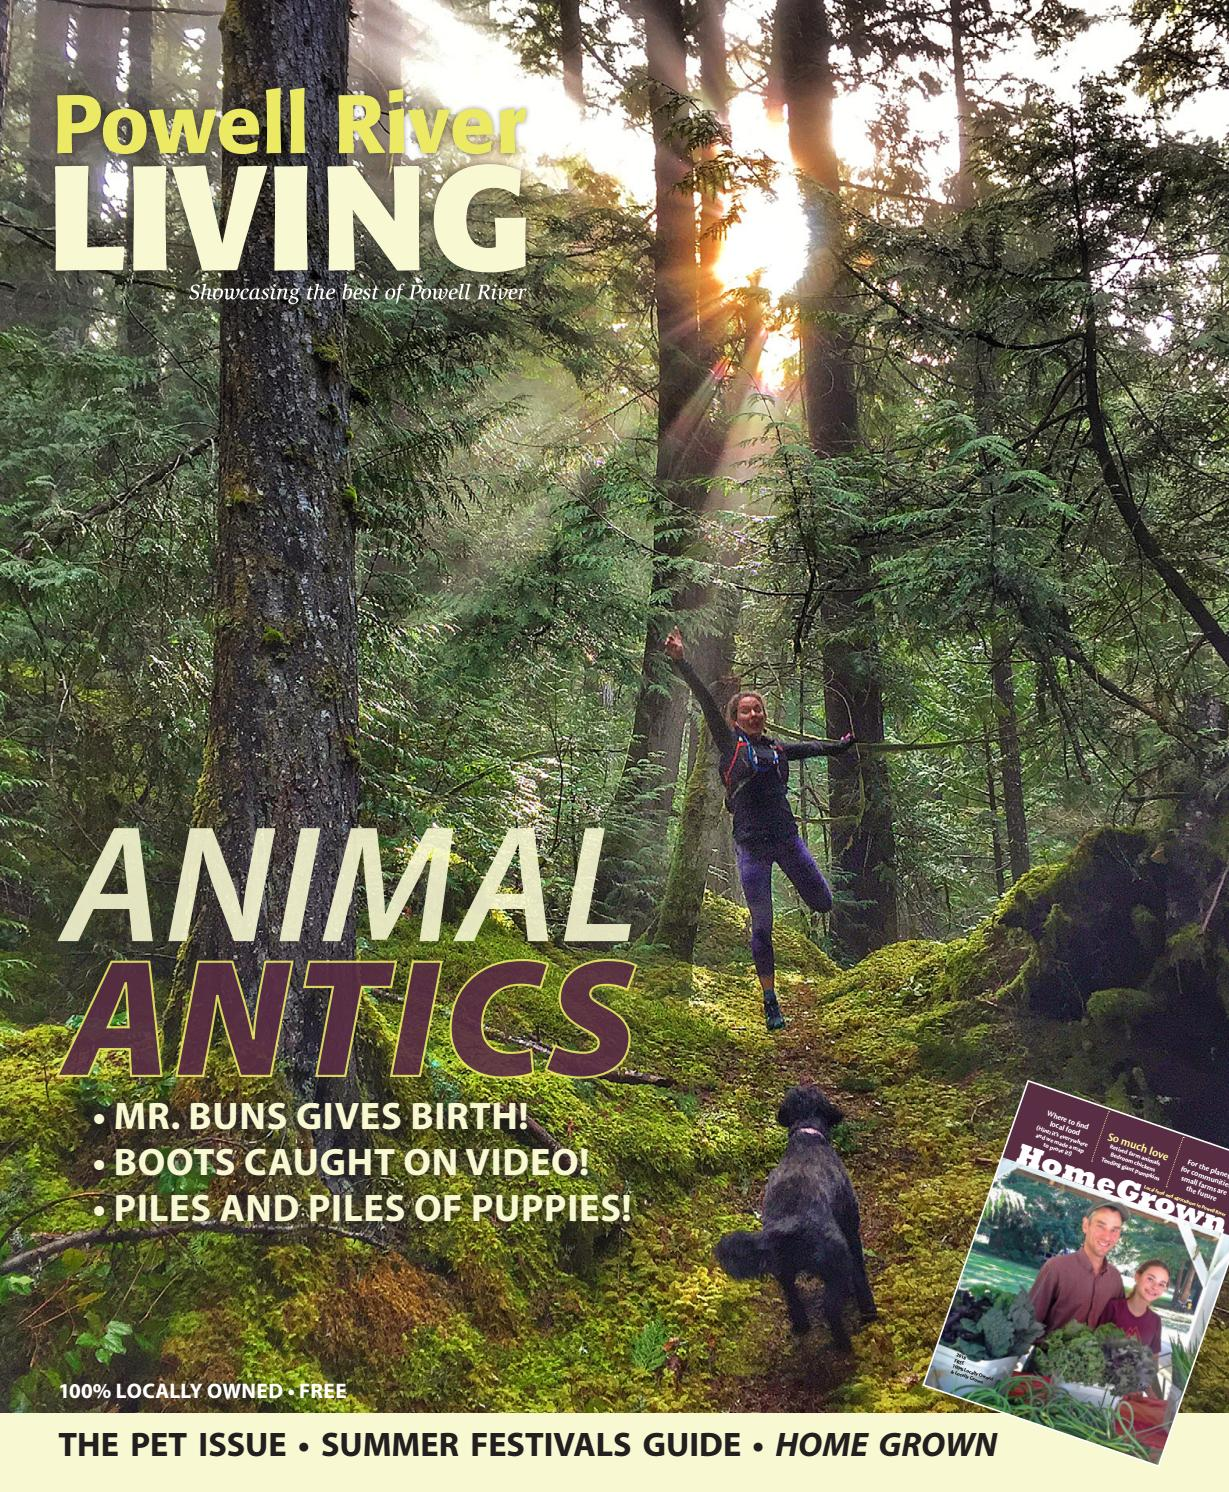 Powell River Living May 2018 by Sean Percy - issuu